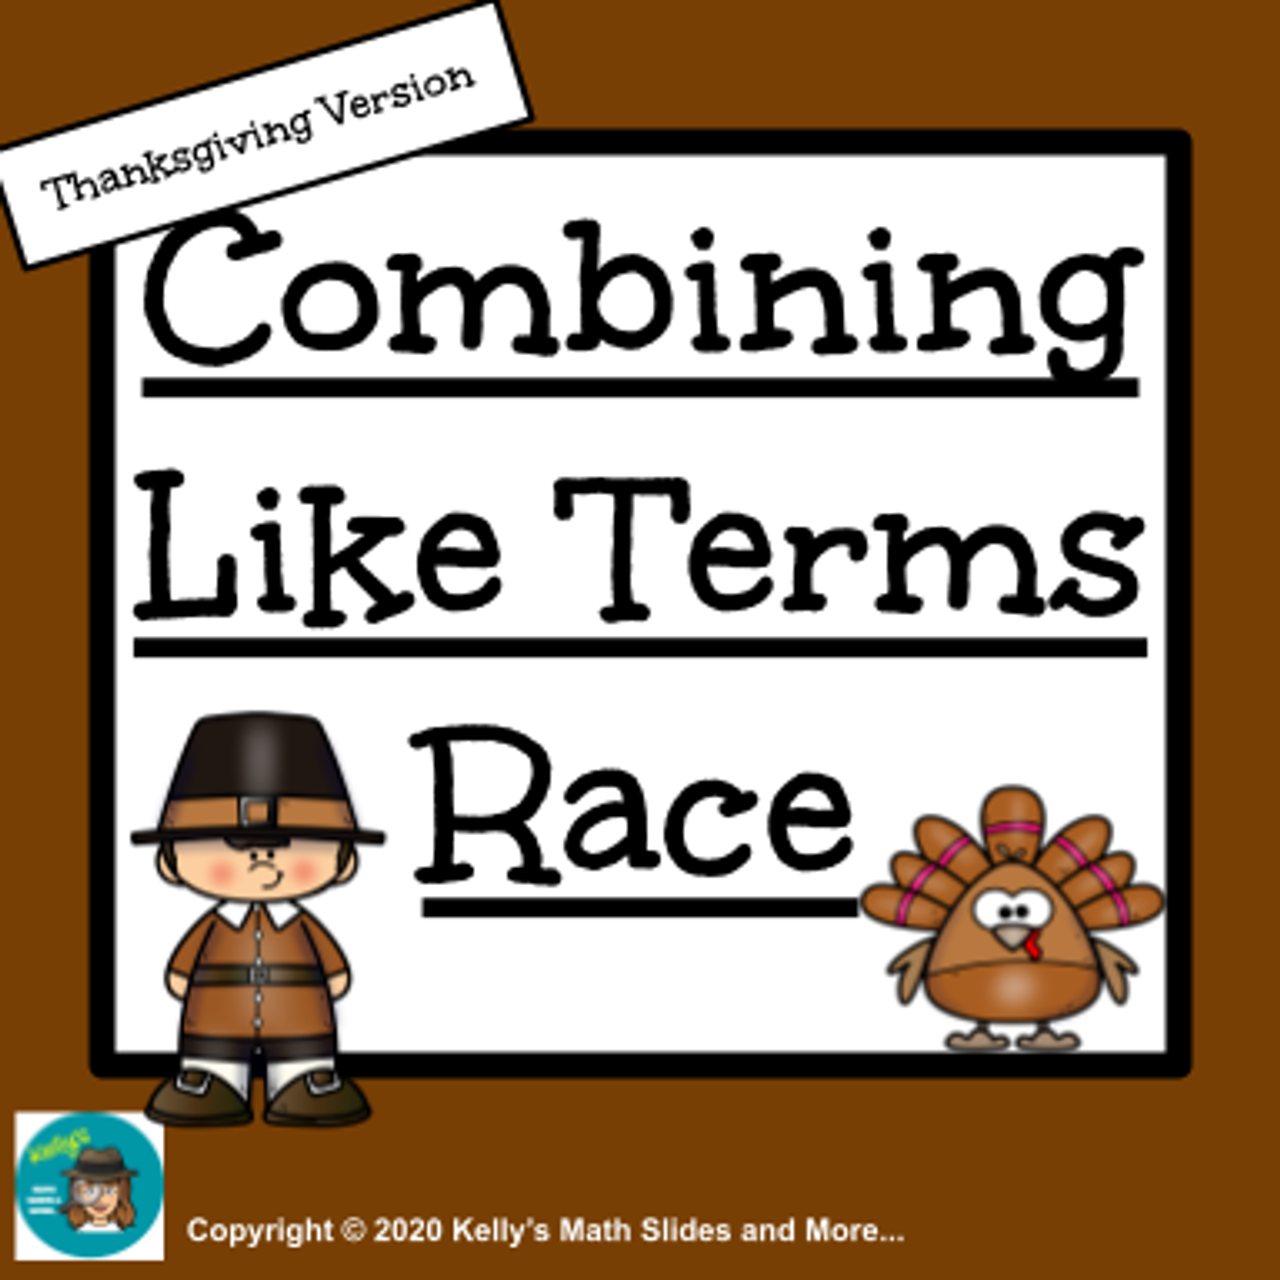 Thanksgiving Combining Like Terms Race